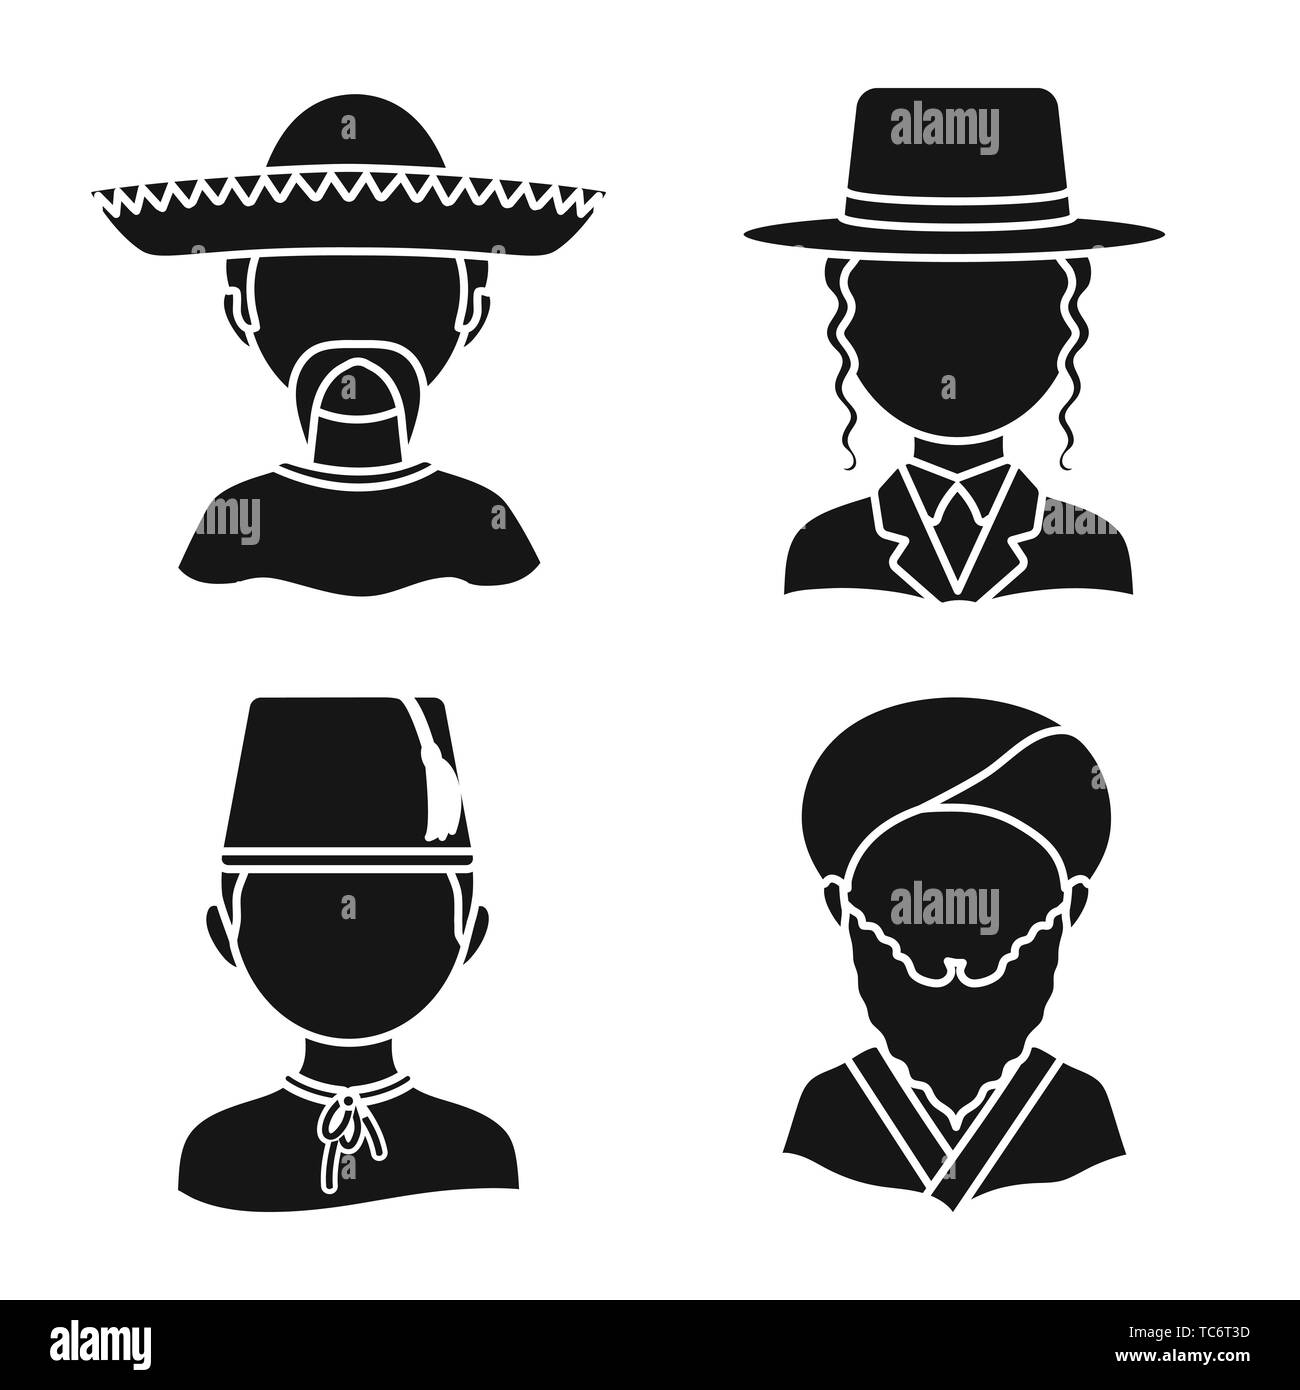 Isolated object of person and culture sign. Collection of person and race  stock vector illustration. - Stock Image